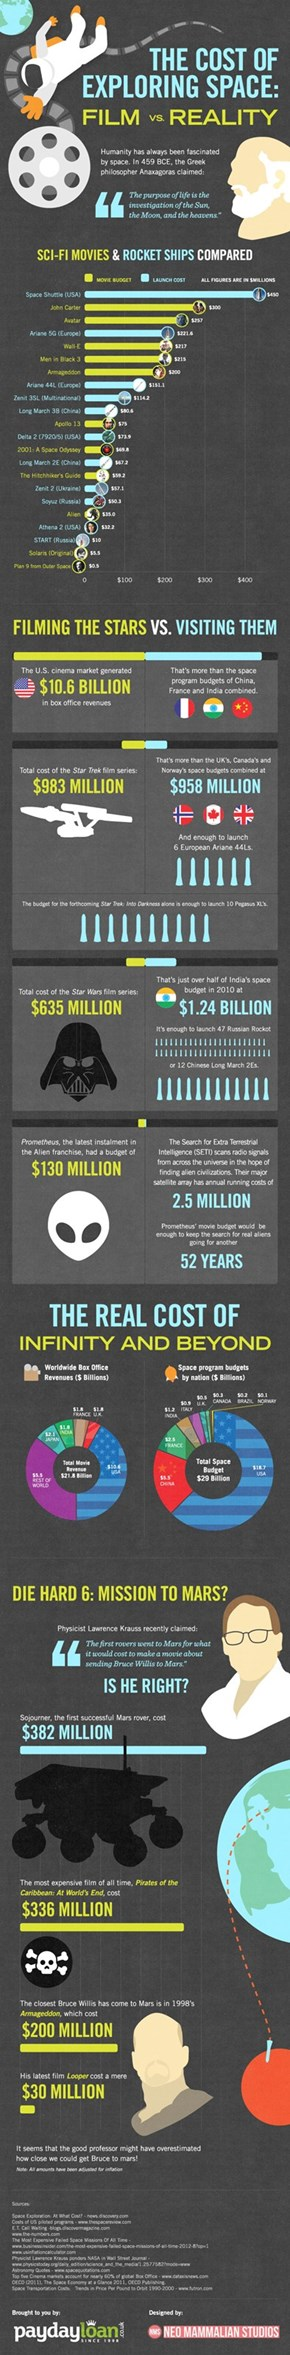 The Cost of Exploring Space: Film vs. Reality [Infographic]